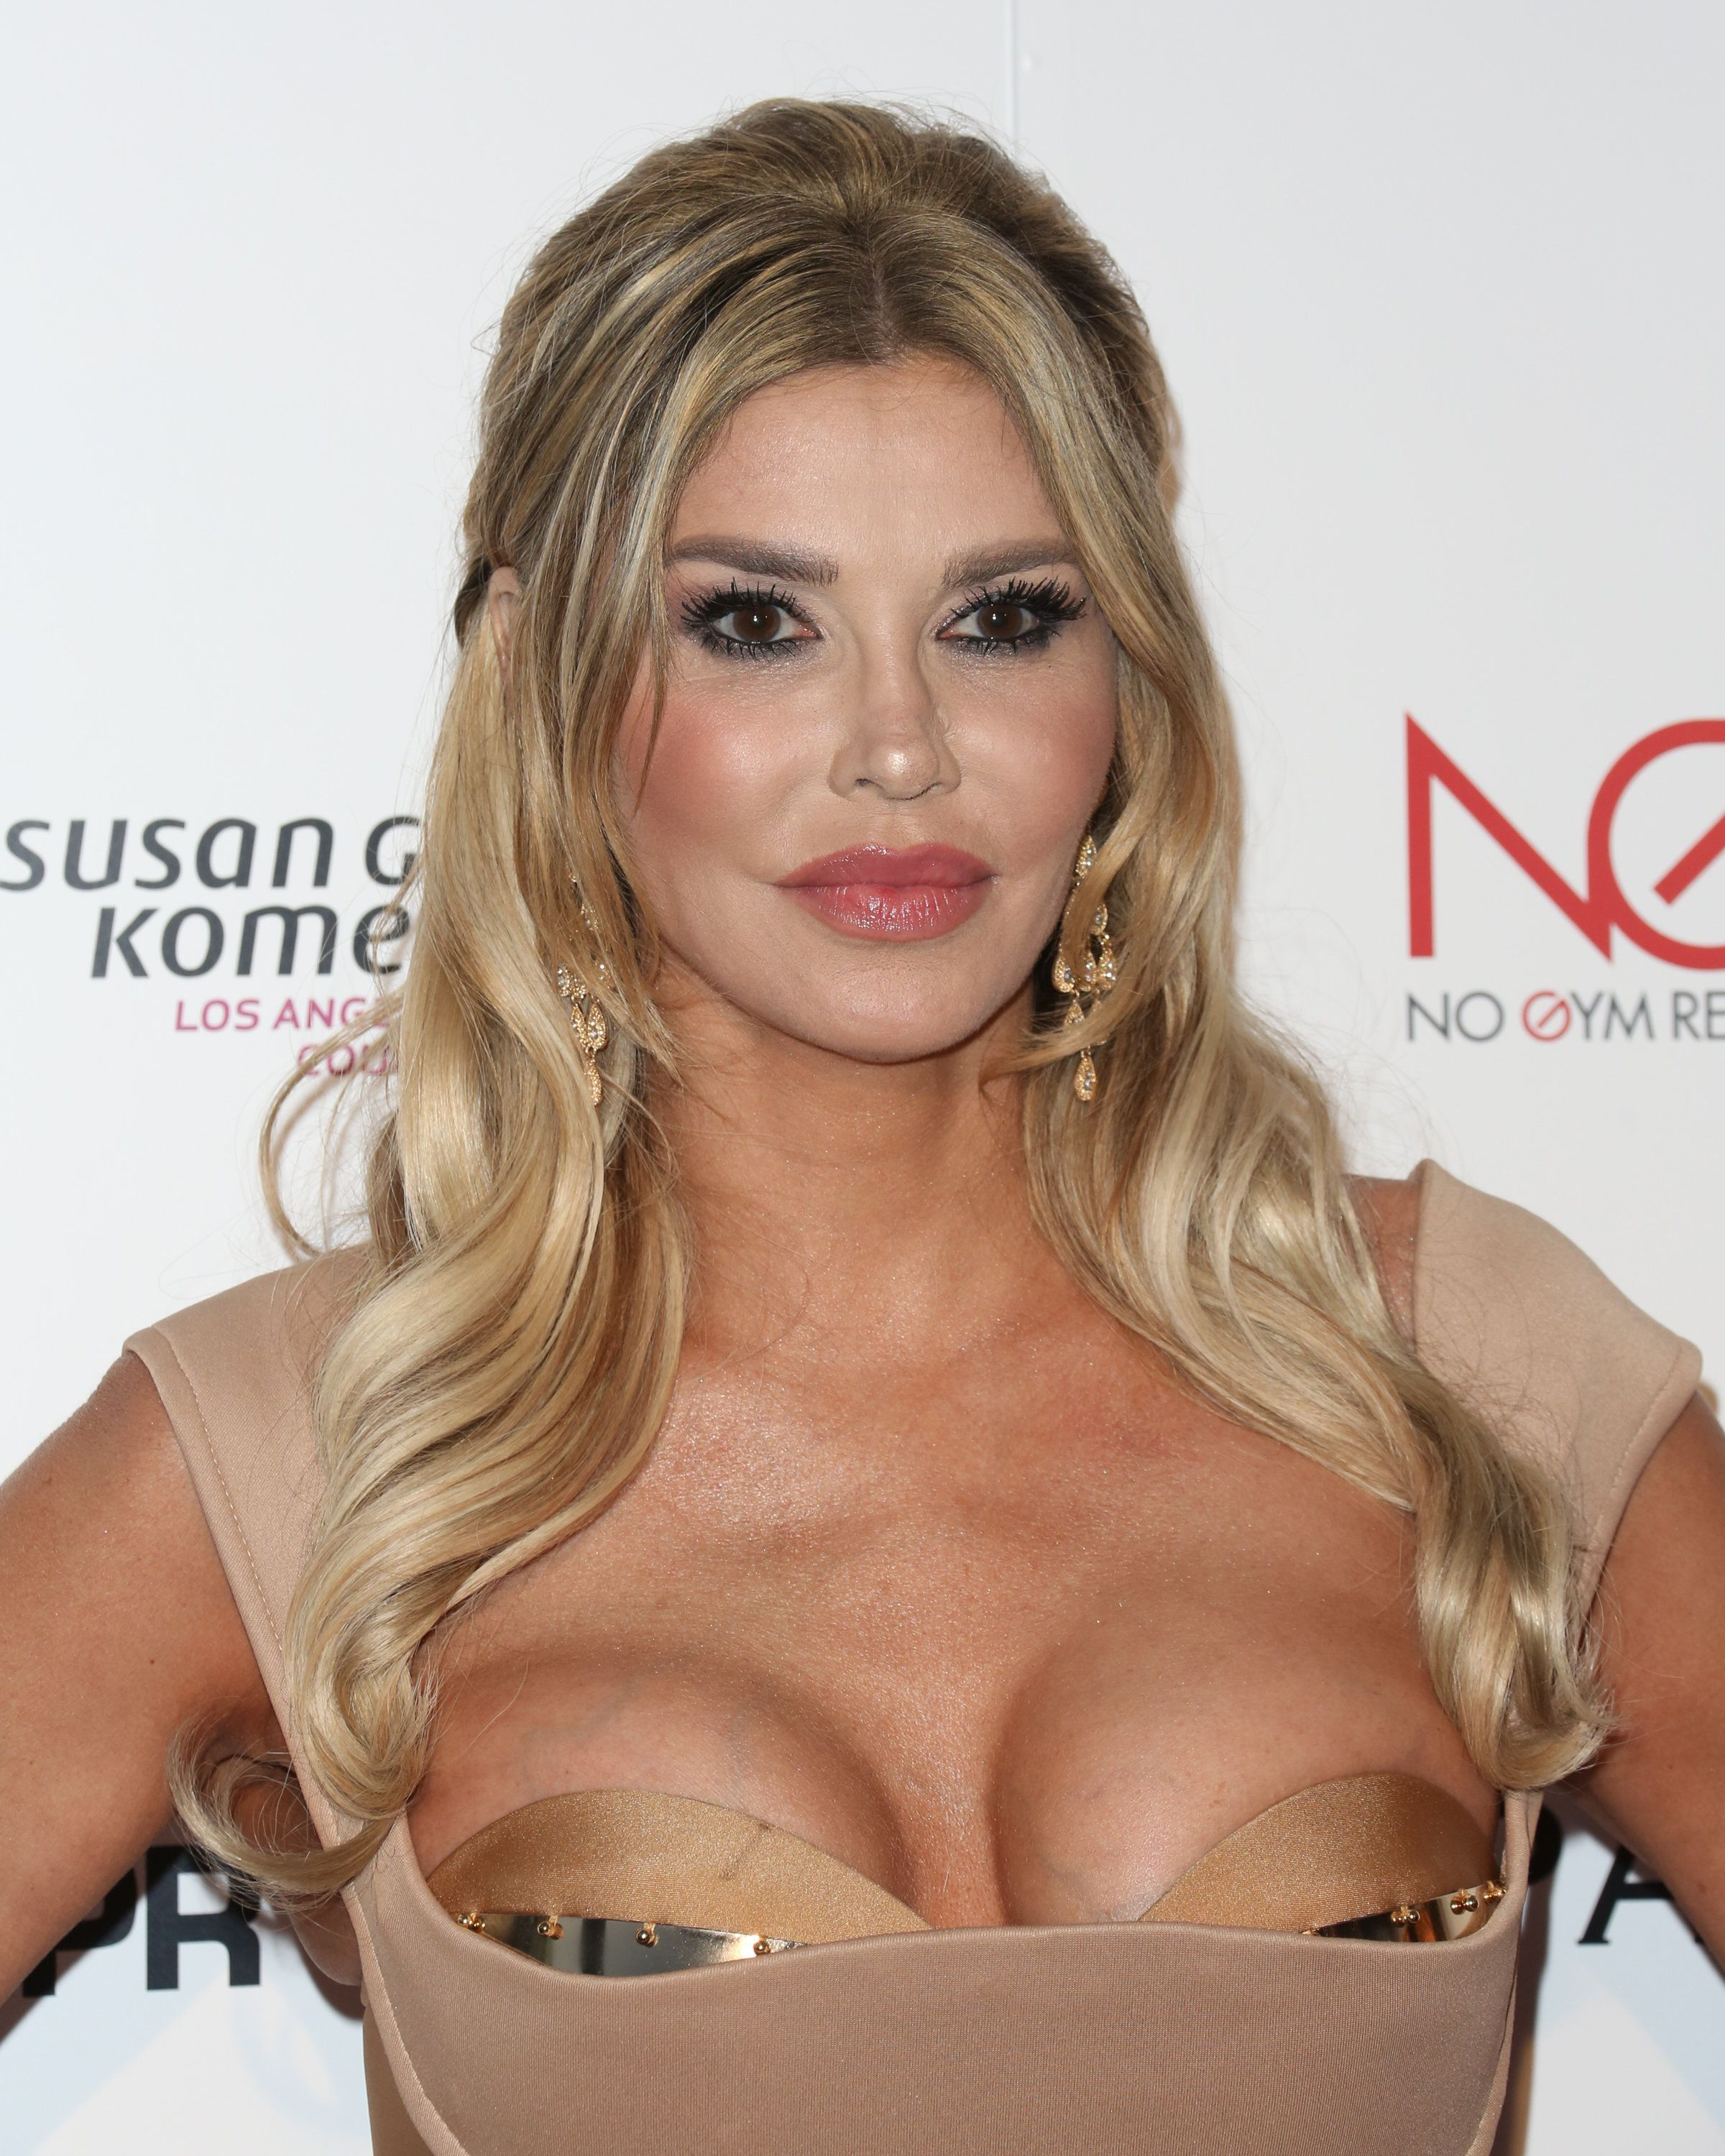 From 'Real Housewives Of Beverly Hills' To 'Celebrity Big Brother' - Get To Know Brandi